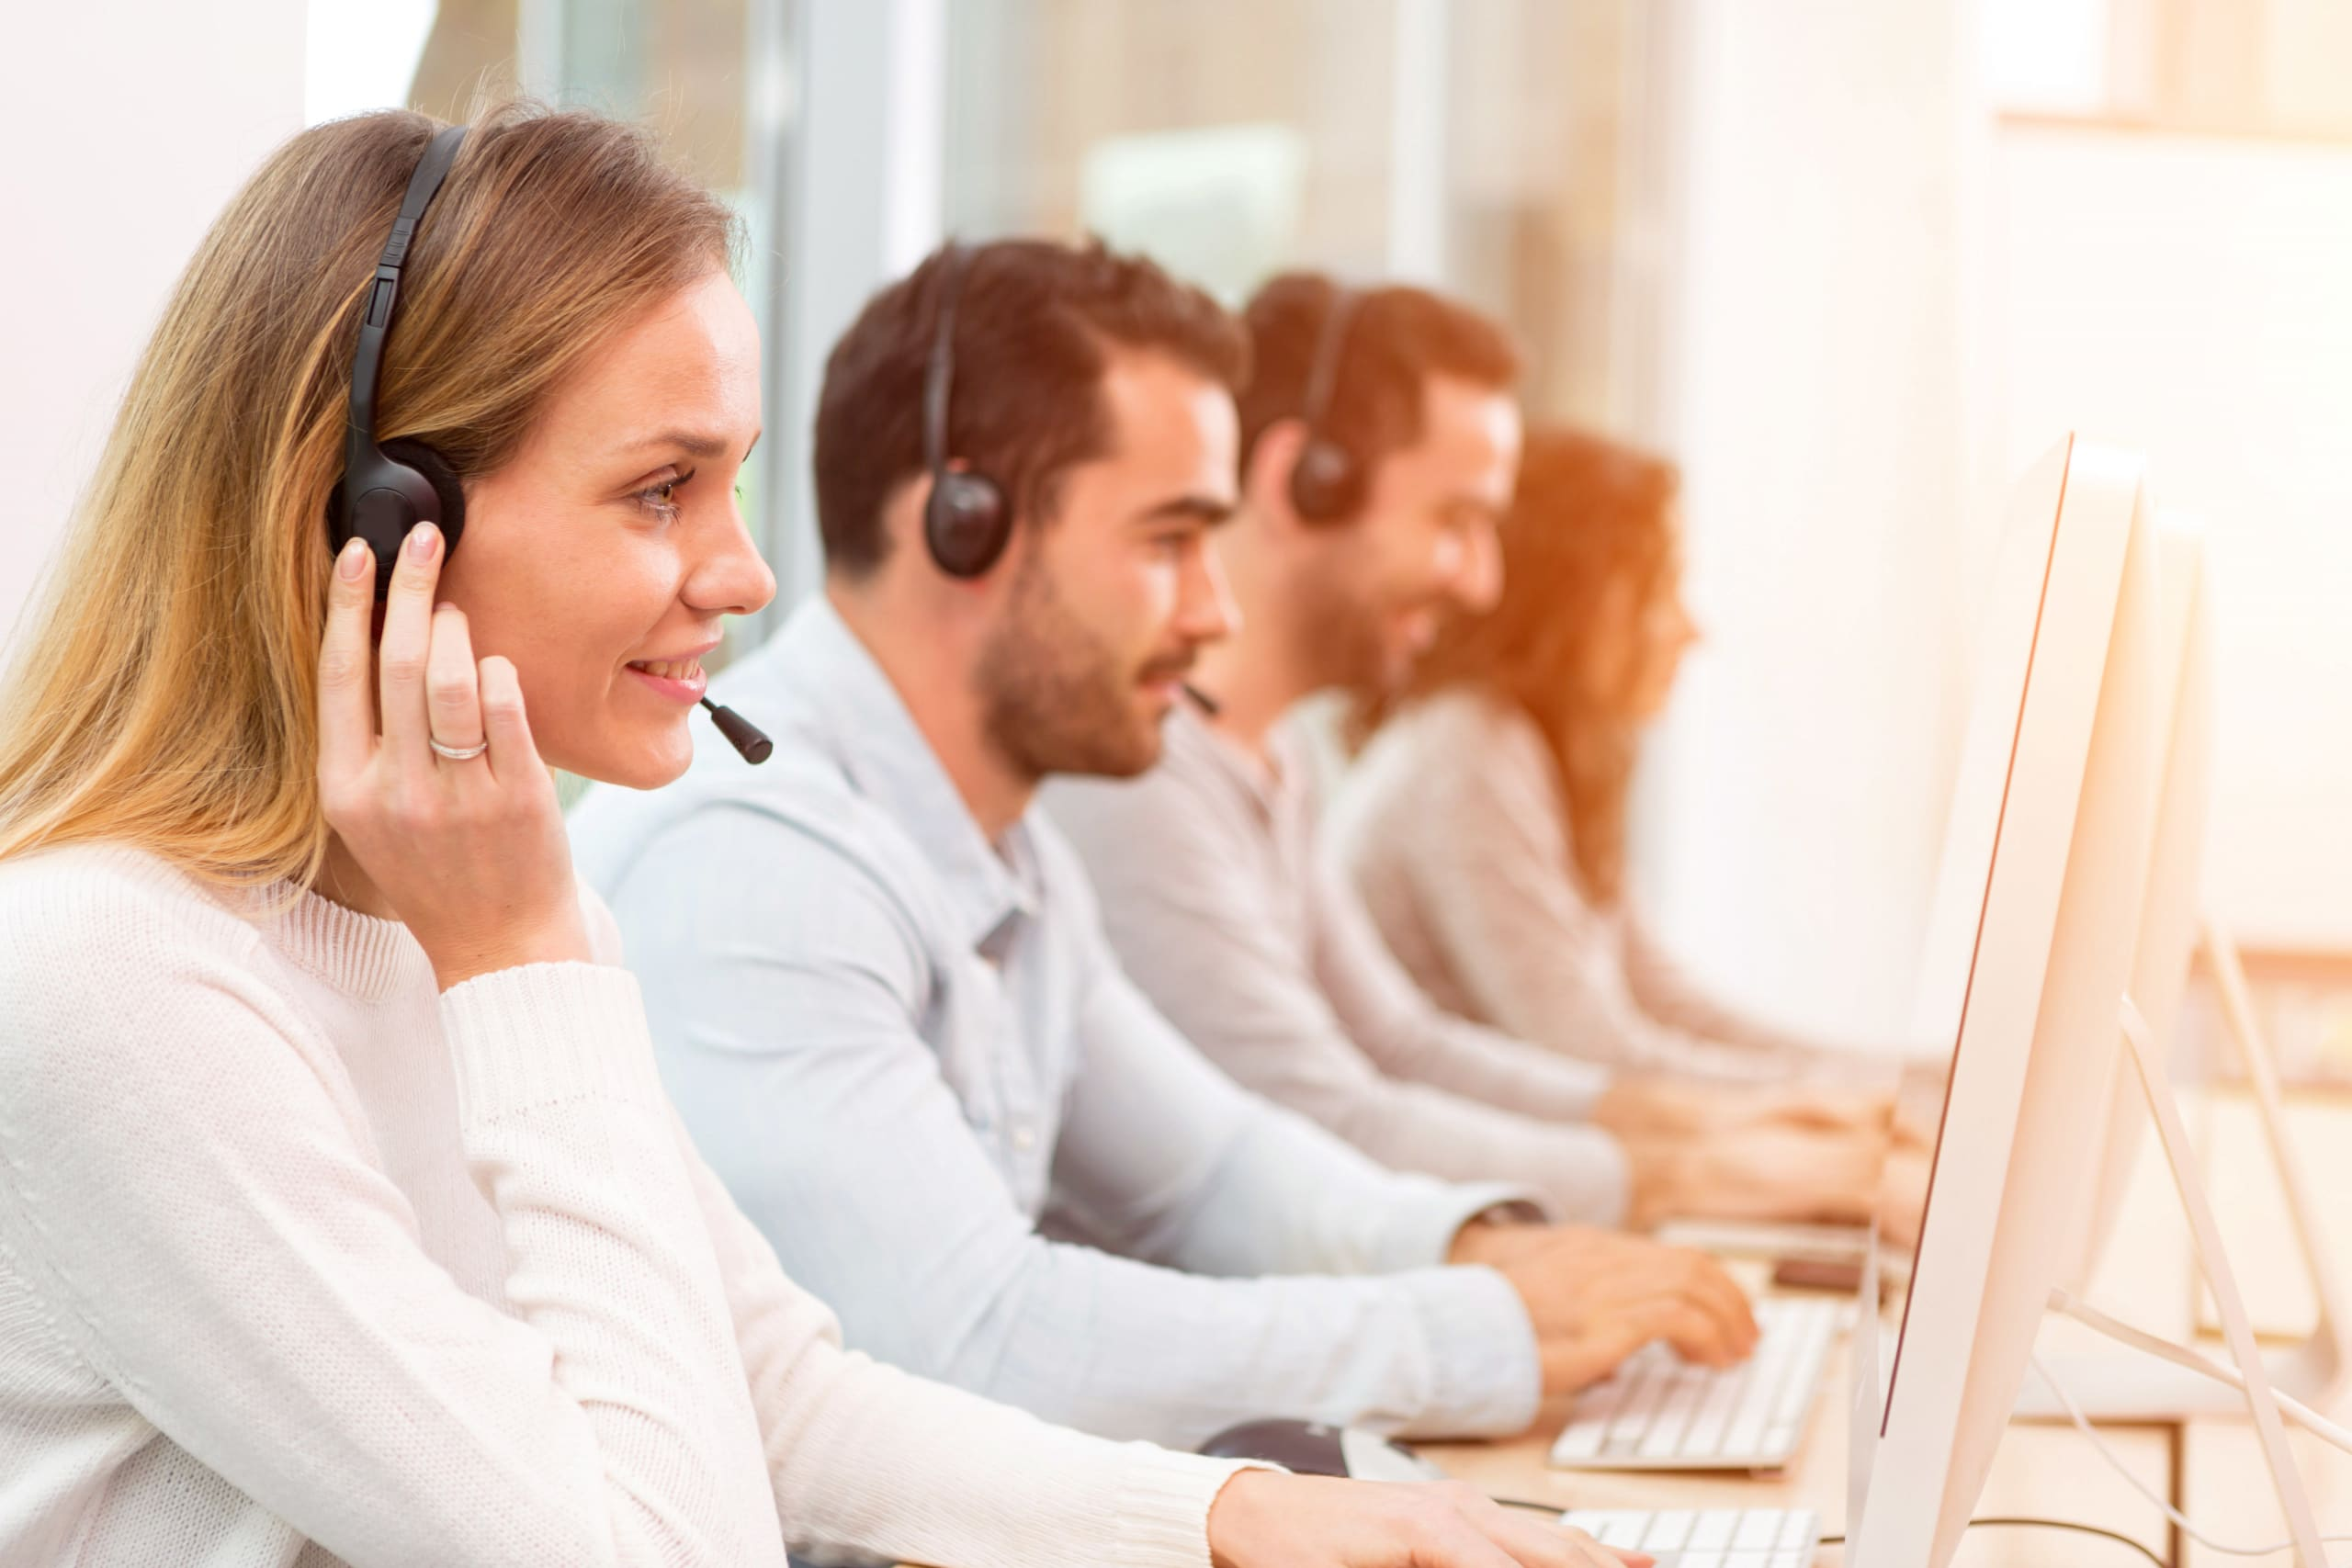 Image of a young attractive woman working in a call center.